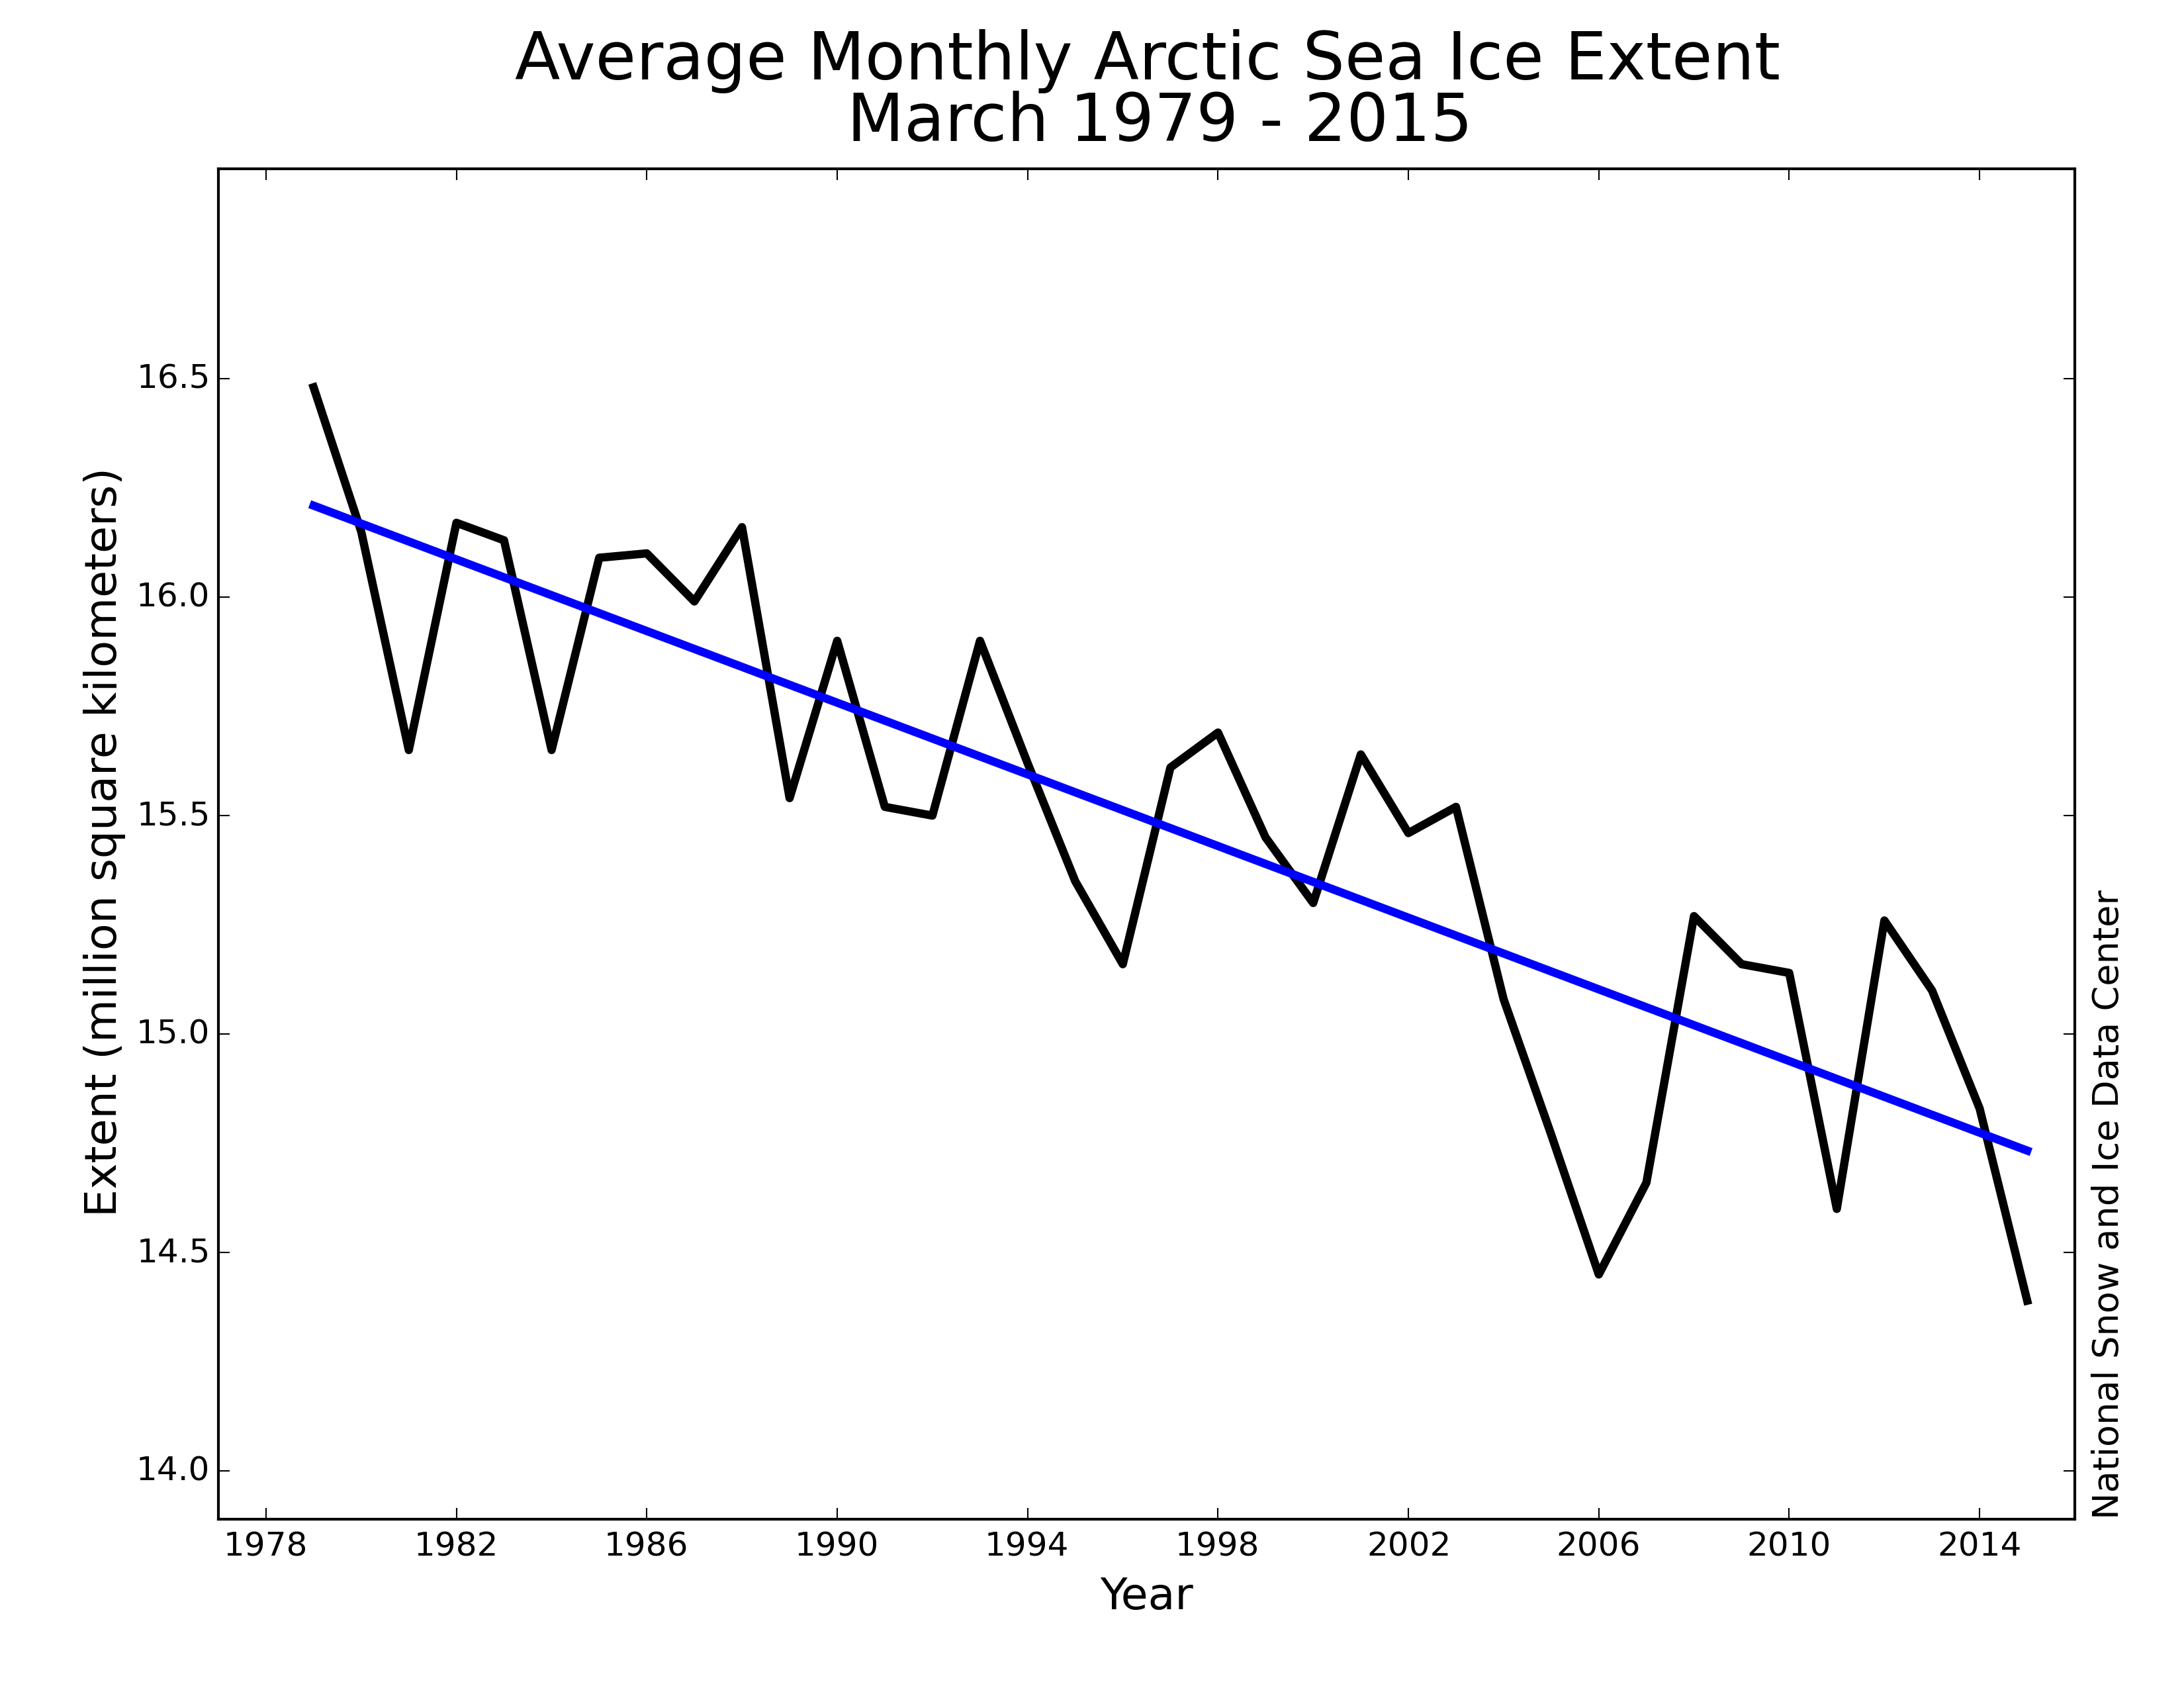 Bombshell scripps says arctic sea ice may return forecasts of bombshell scripps says arctic sea ice may return forecasts of loss based on oversimplified arguments watts up with that nvjuhfo Image collections